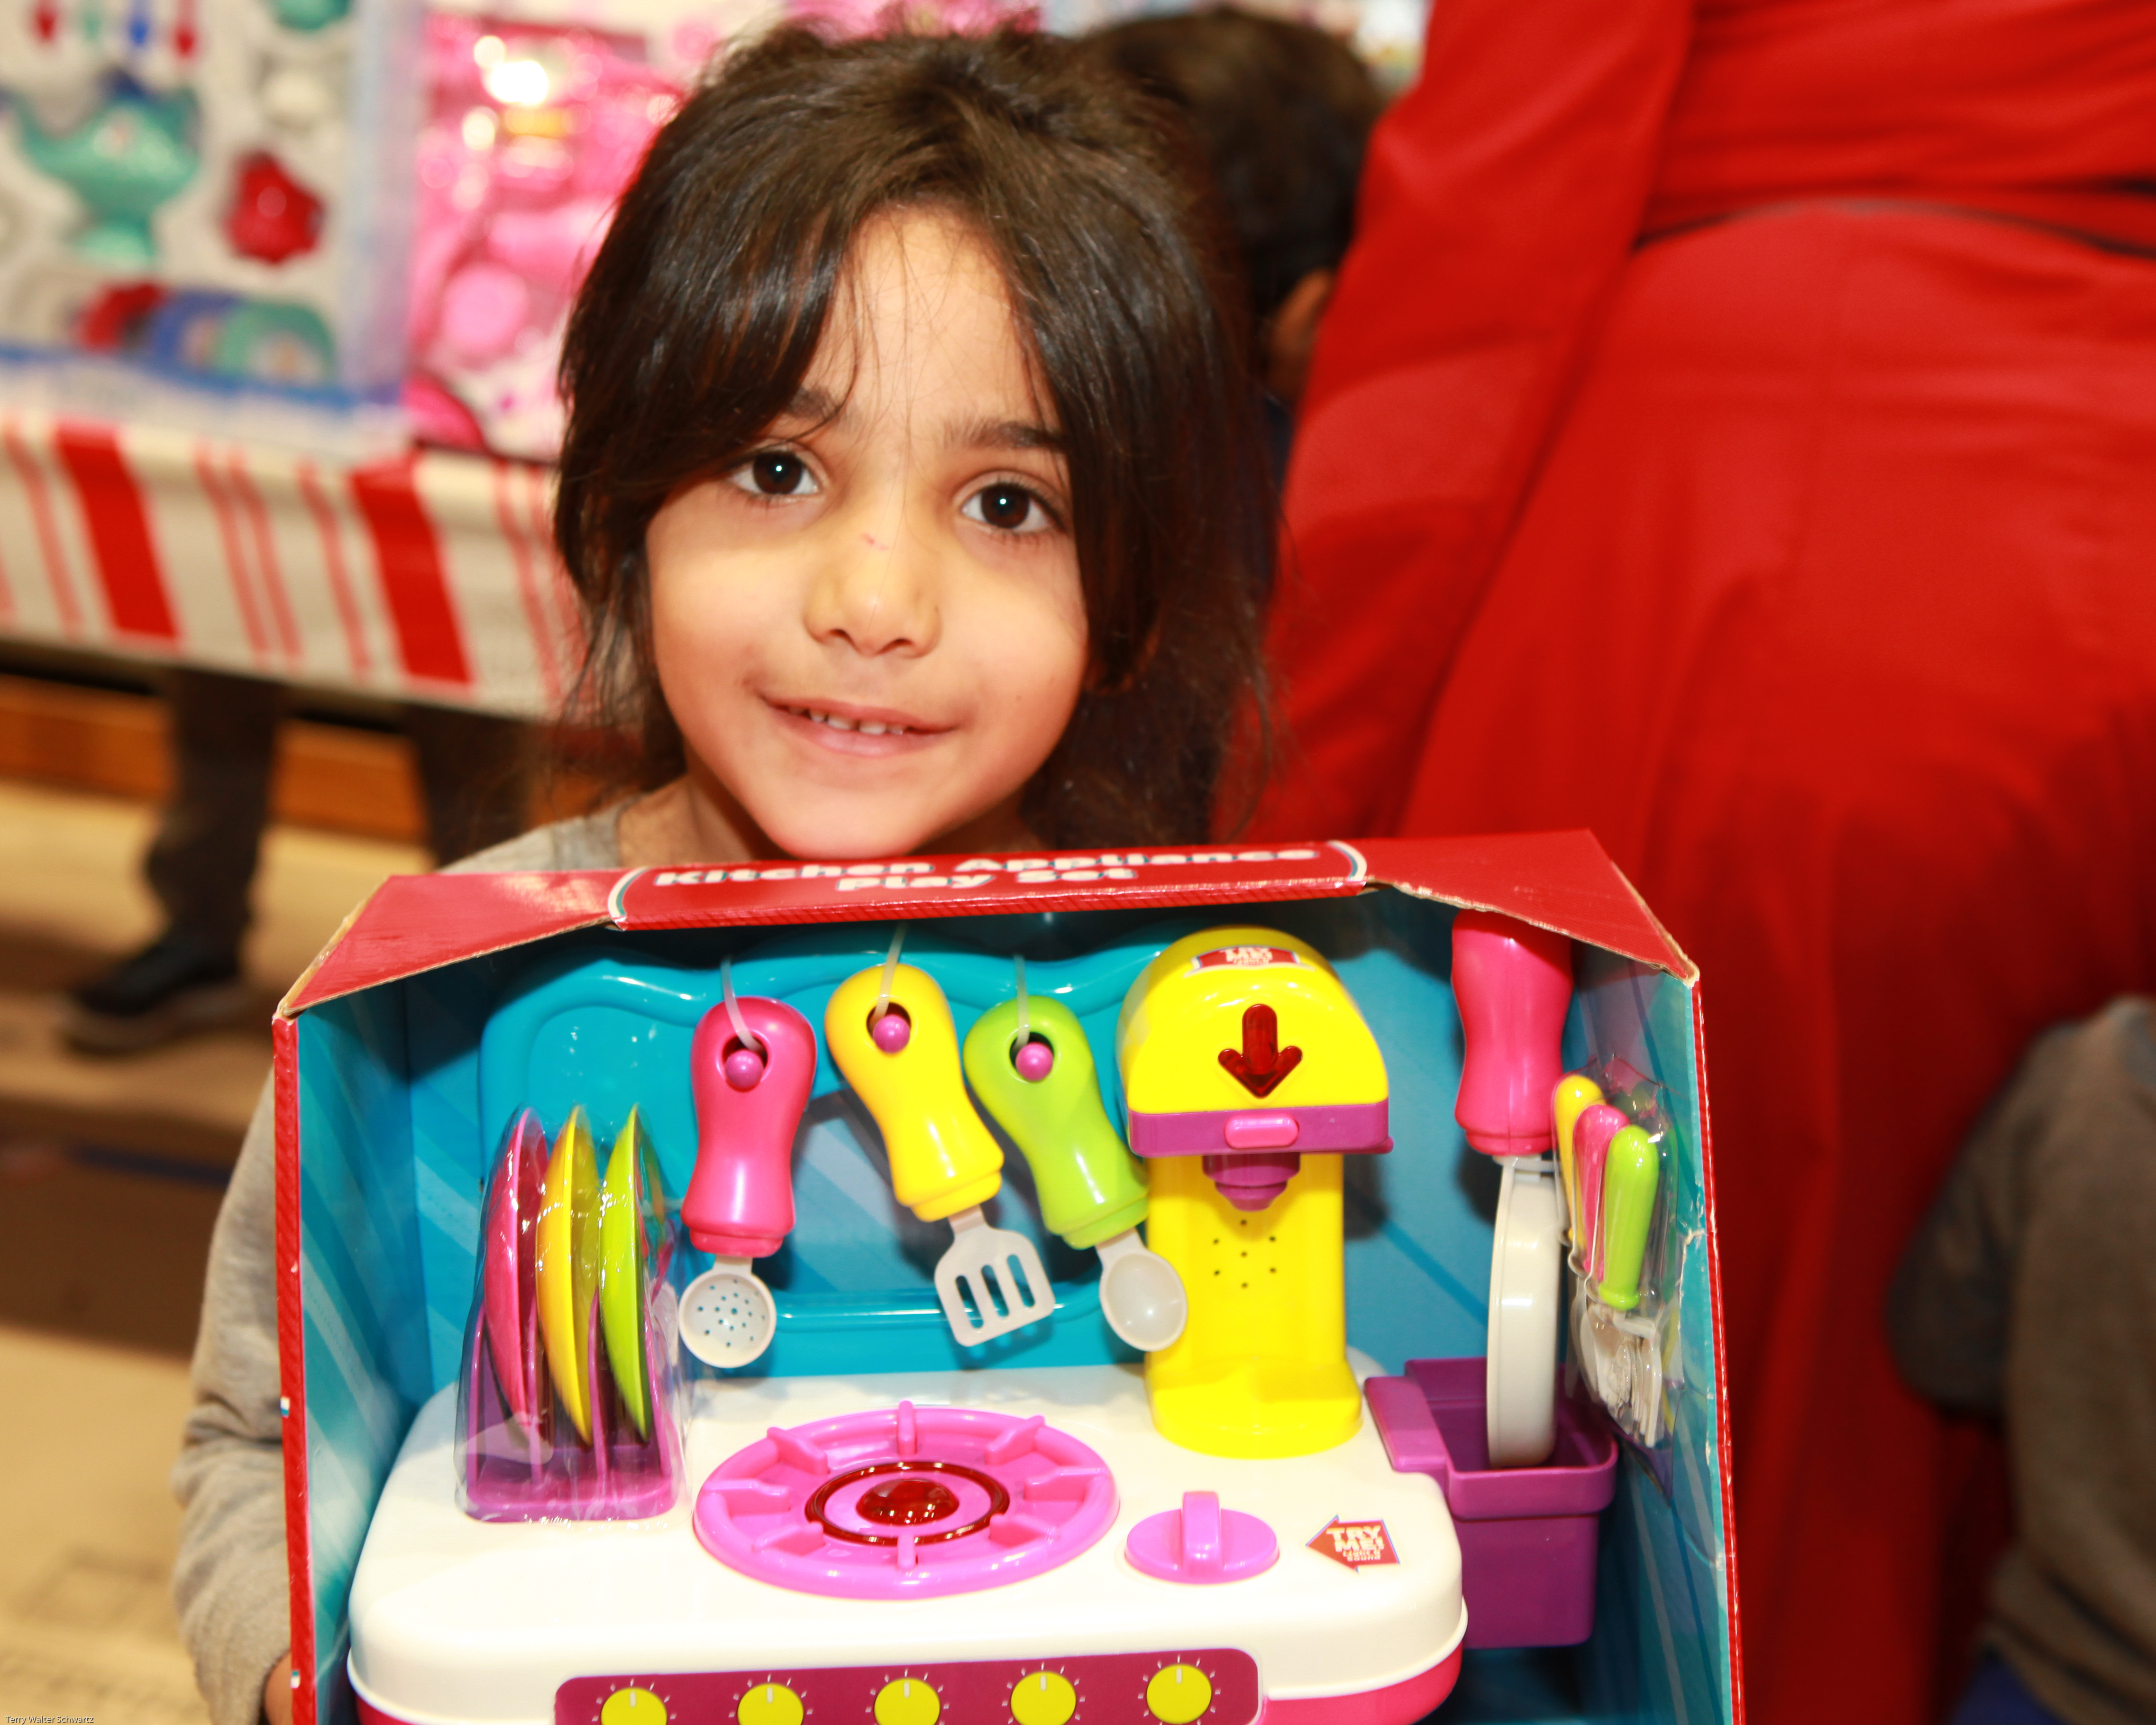 Smiling girl holding a toy cooking set